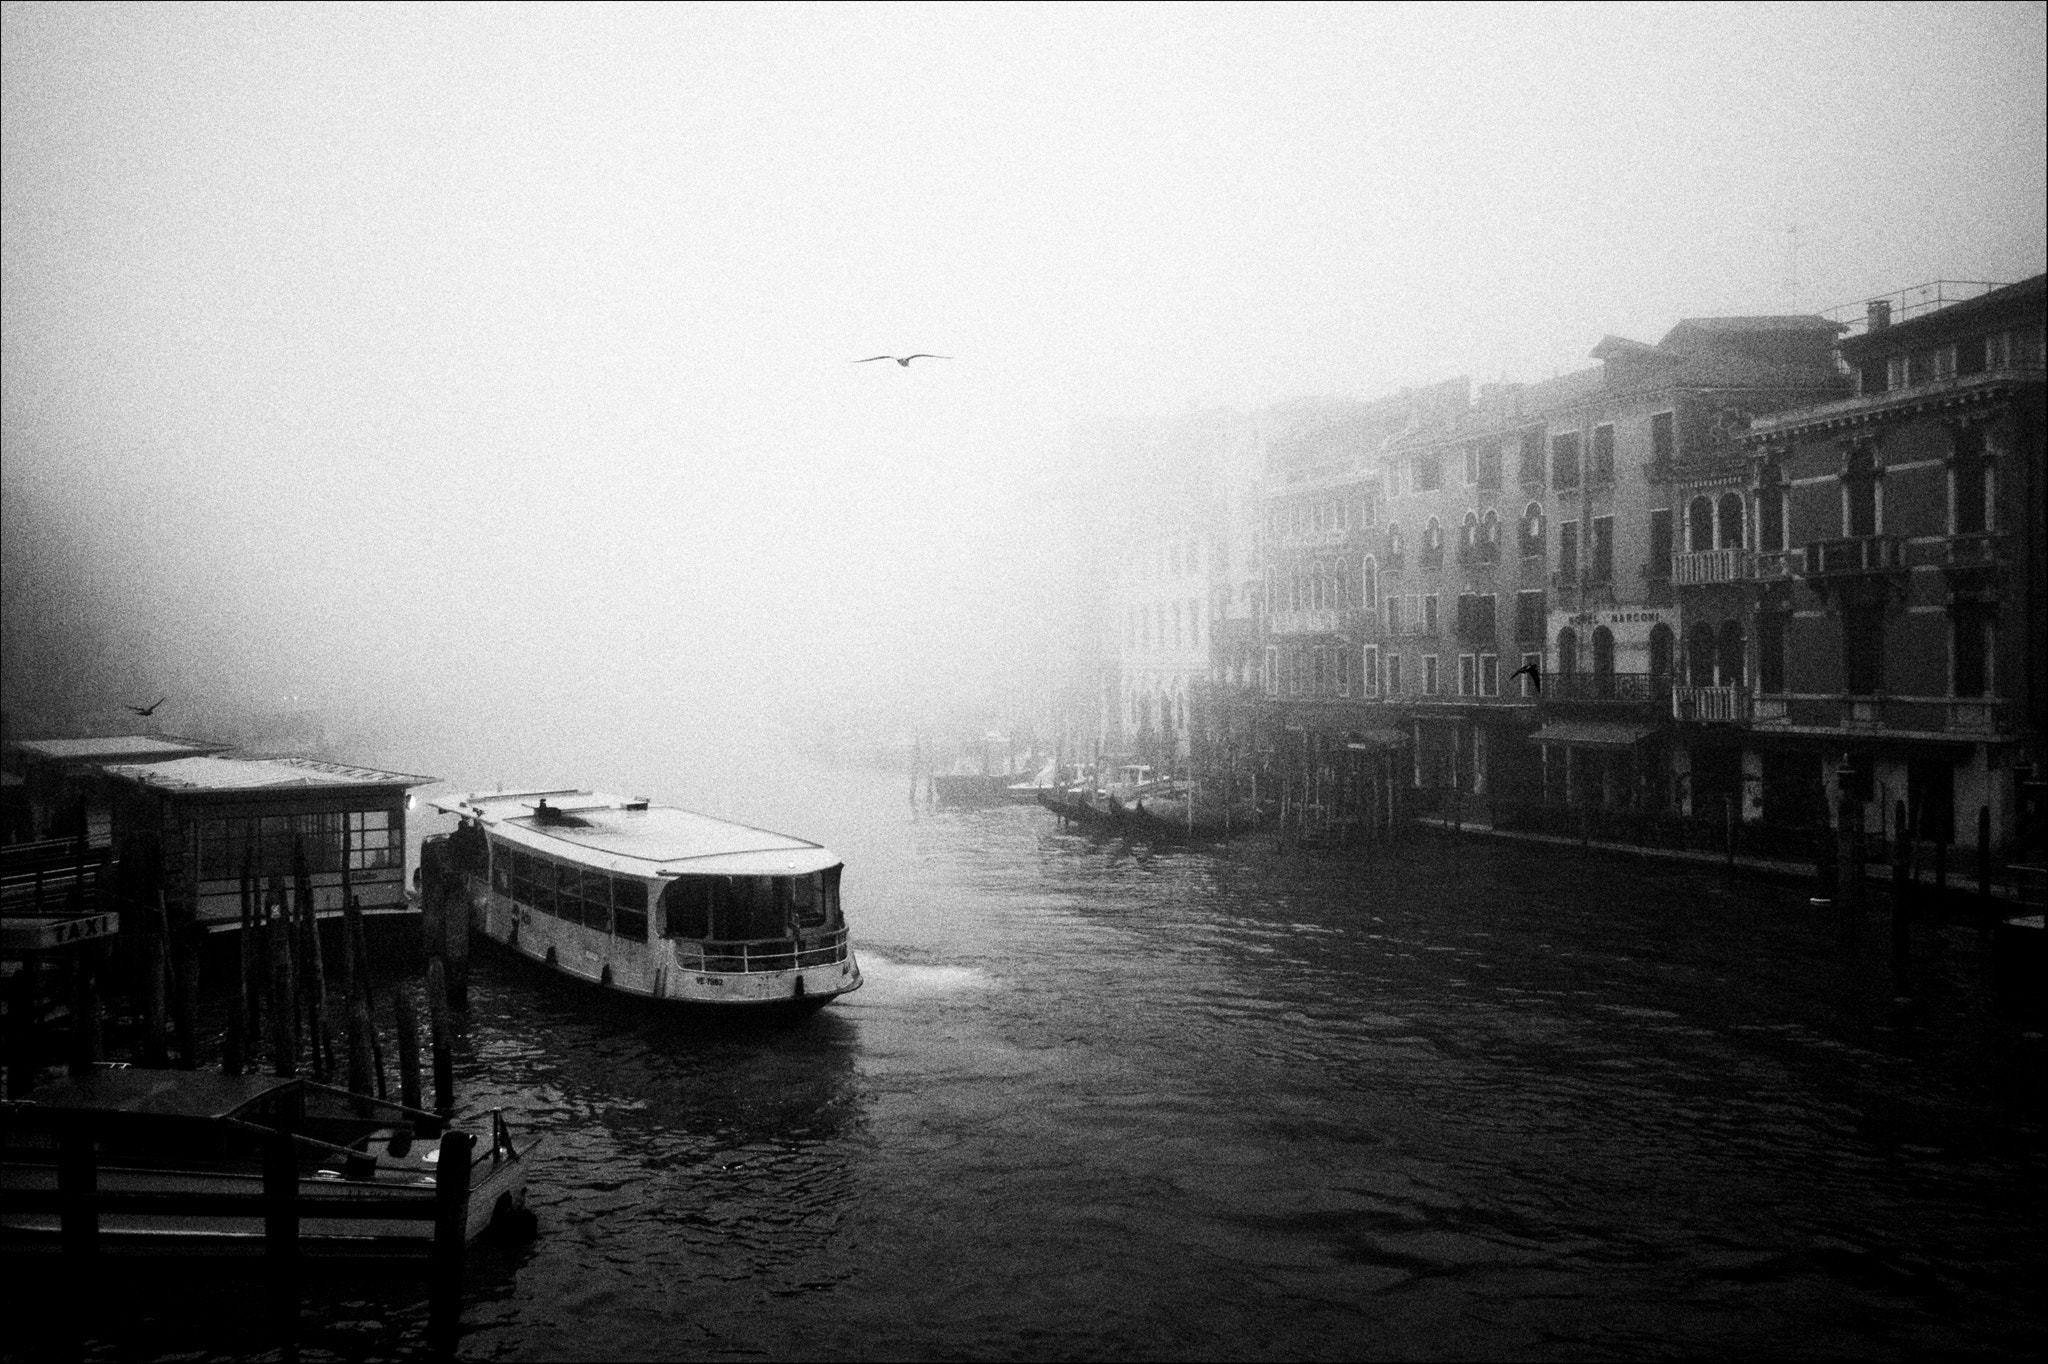 Photograph In Venice! by Tim Dornbusch on 500px